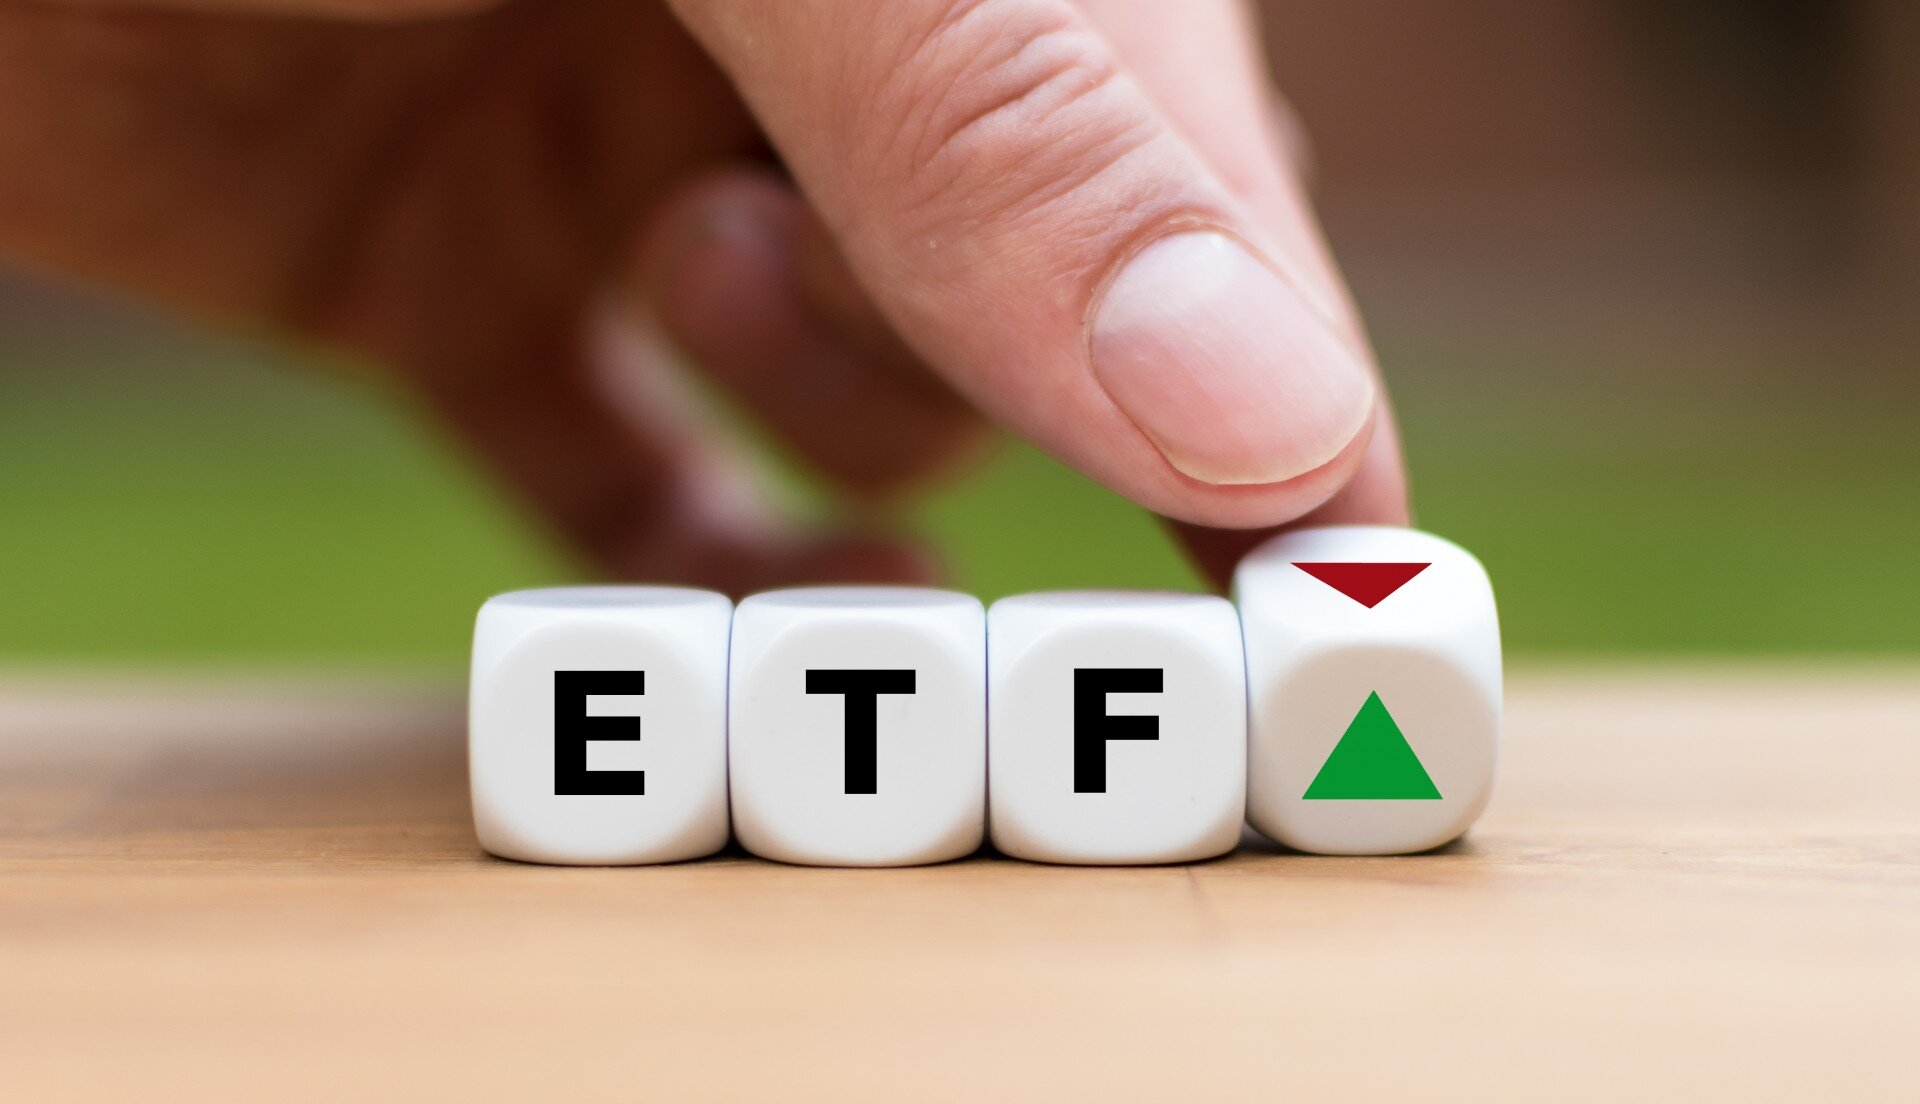 Total ETF assets as of June 30 was 1.99 billion ringgit, down from 2.23 billion ringgit at the end of 2020